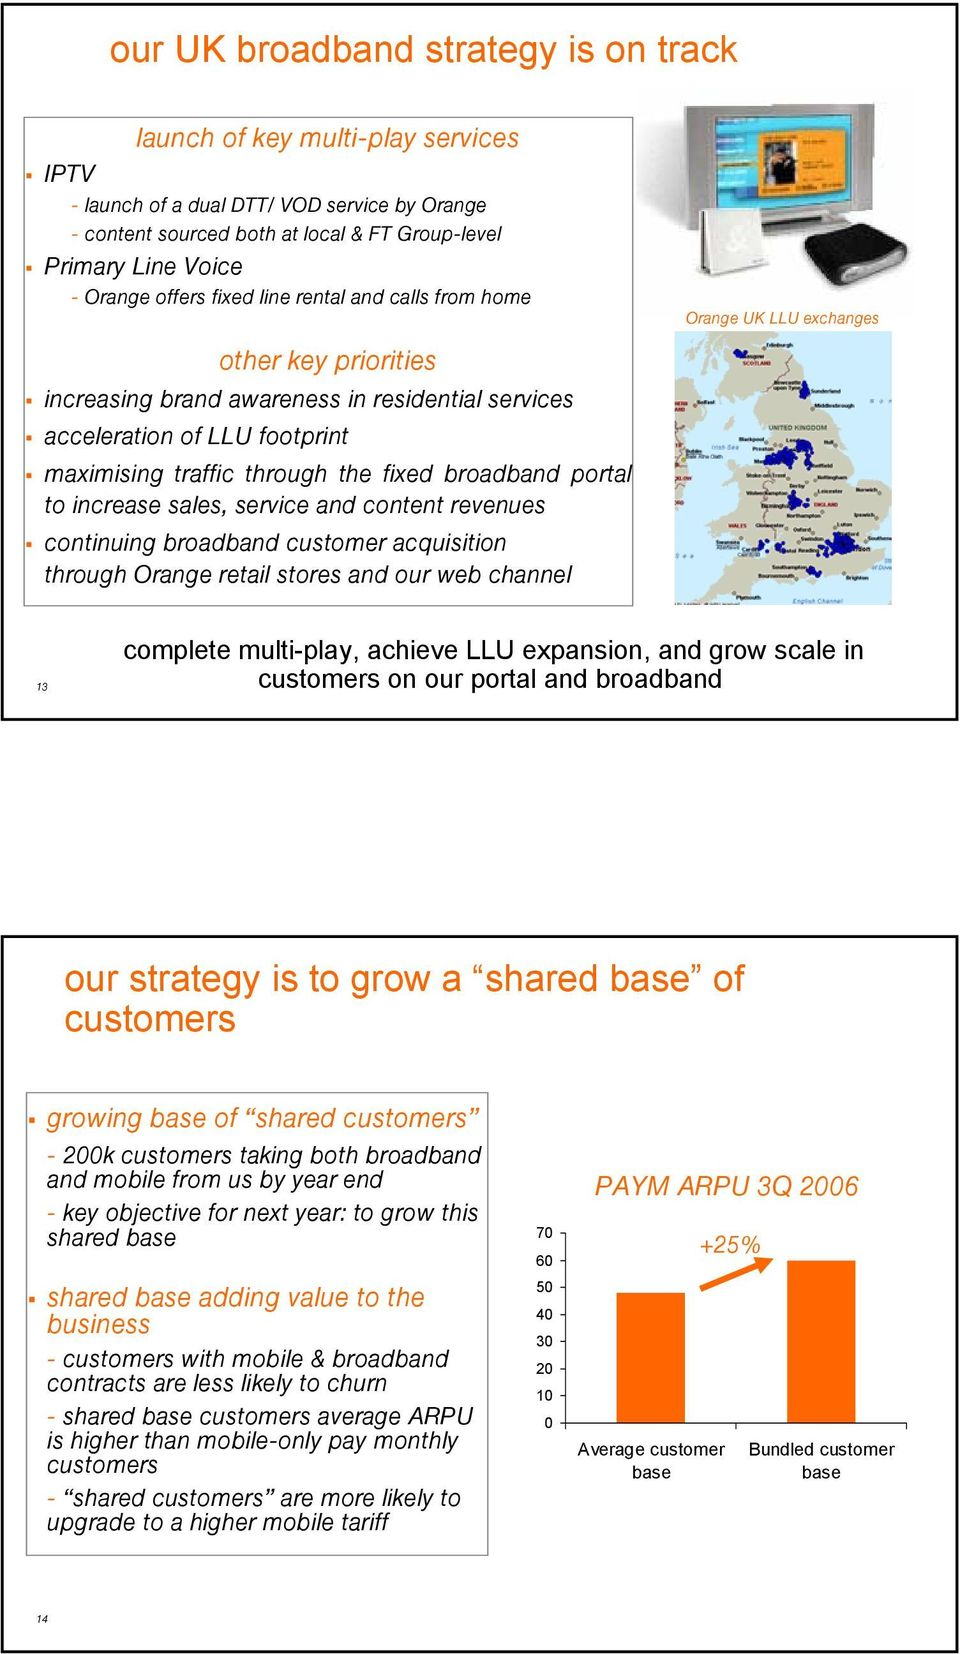 the fixed broadband portal to increase sales, service and content revenues continuing broadband customer acquisition through Orange retail stores and our web channel 13 complete multi-play, achieve